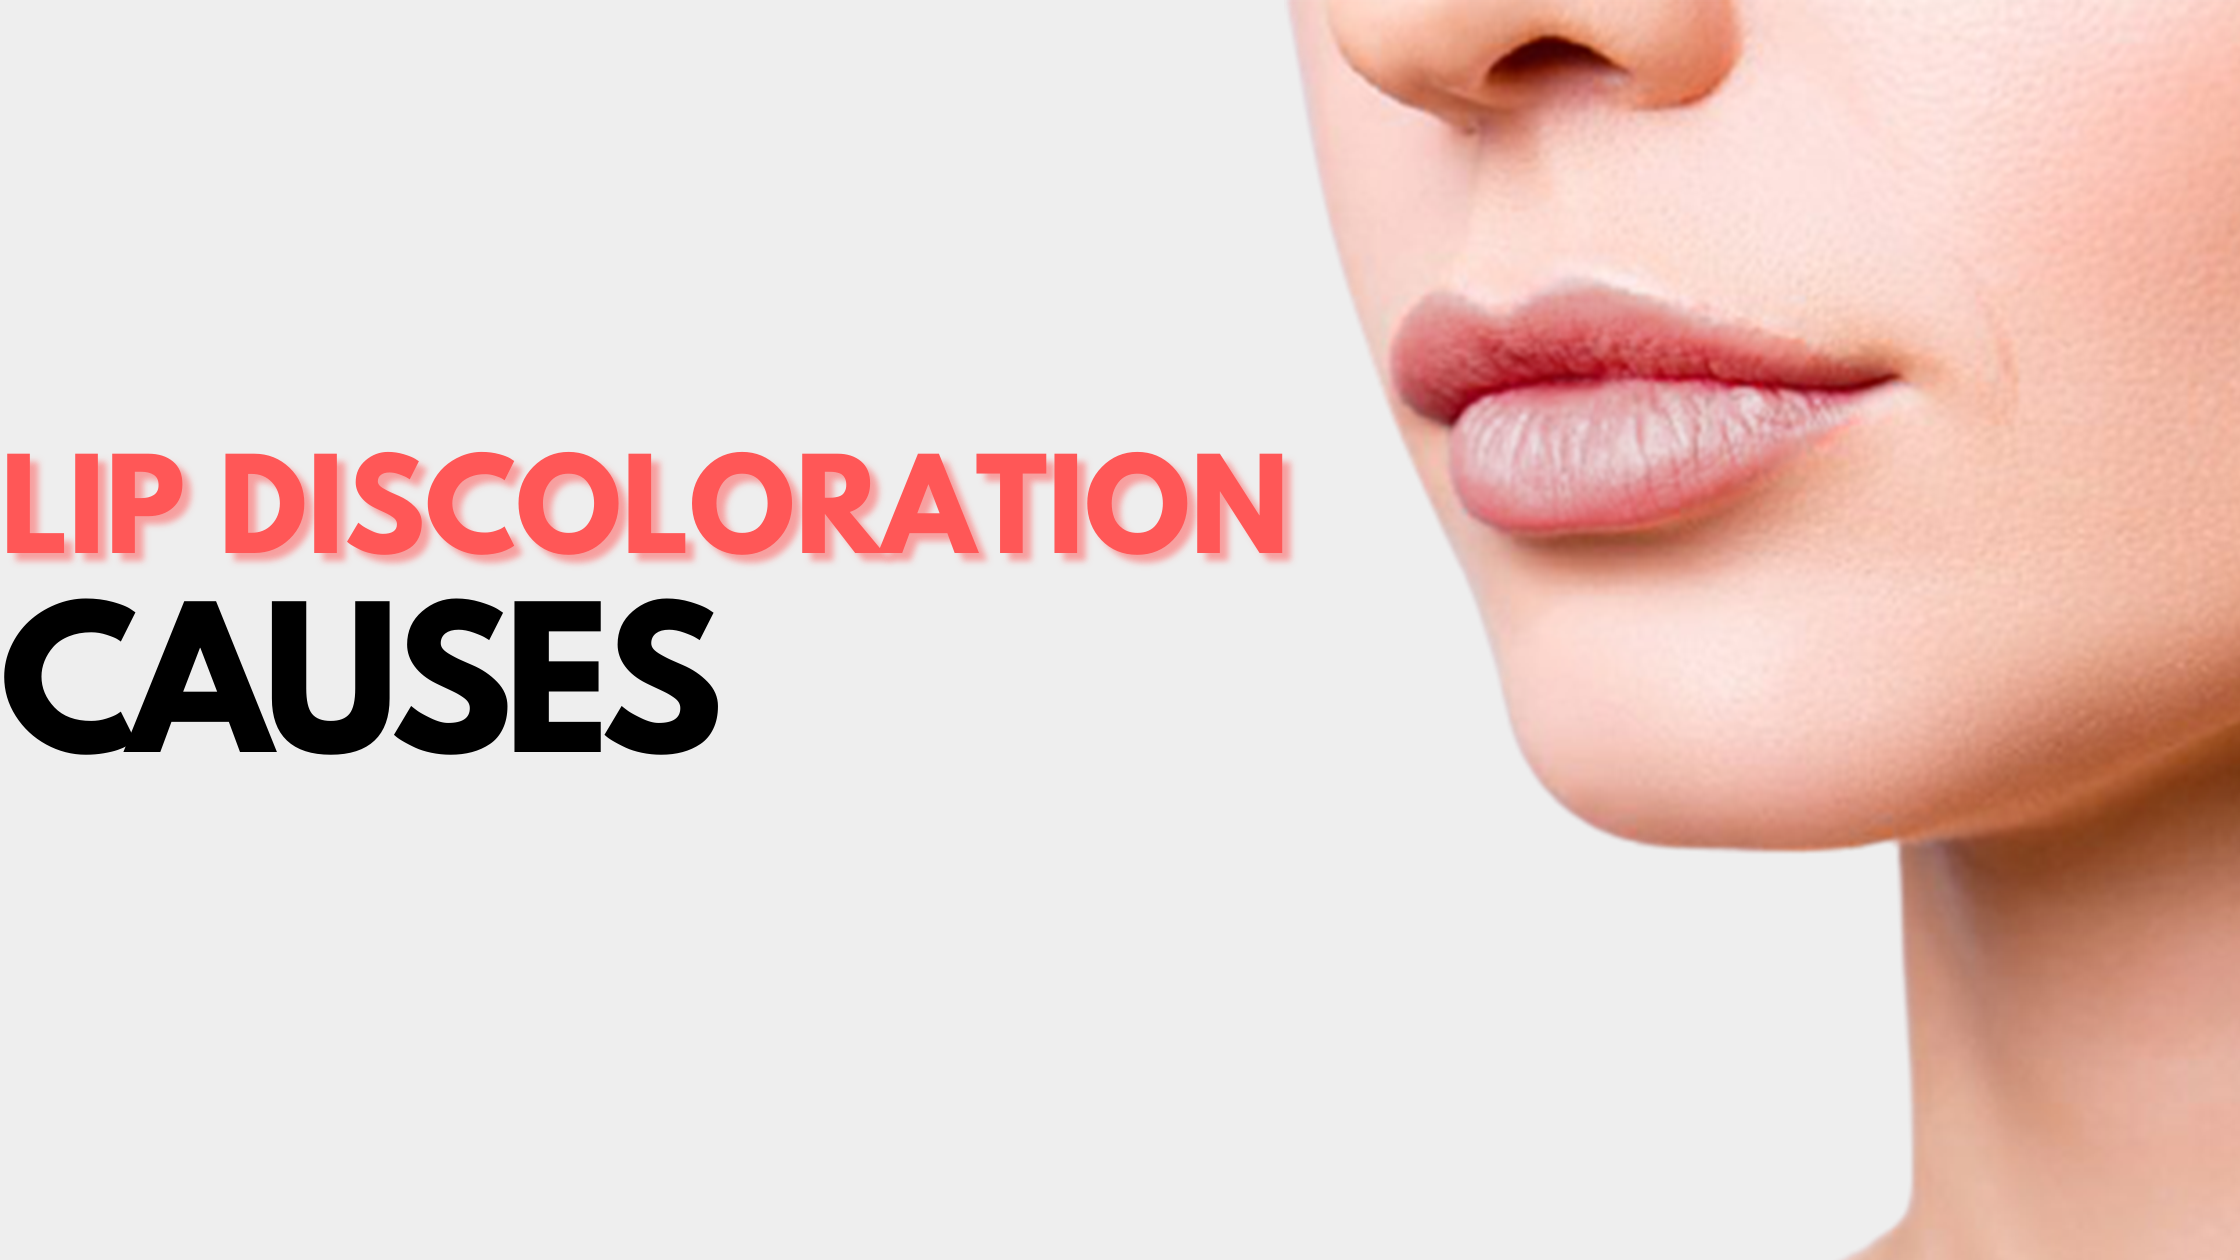 lip discoloration causes